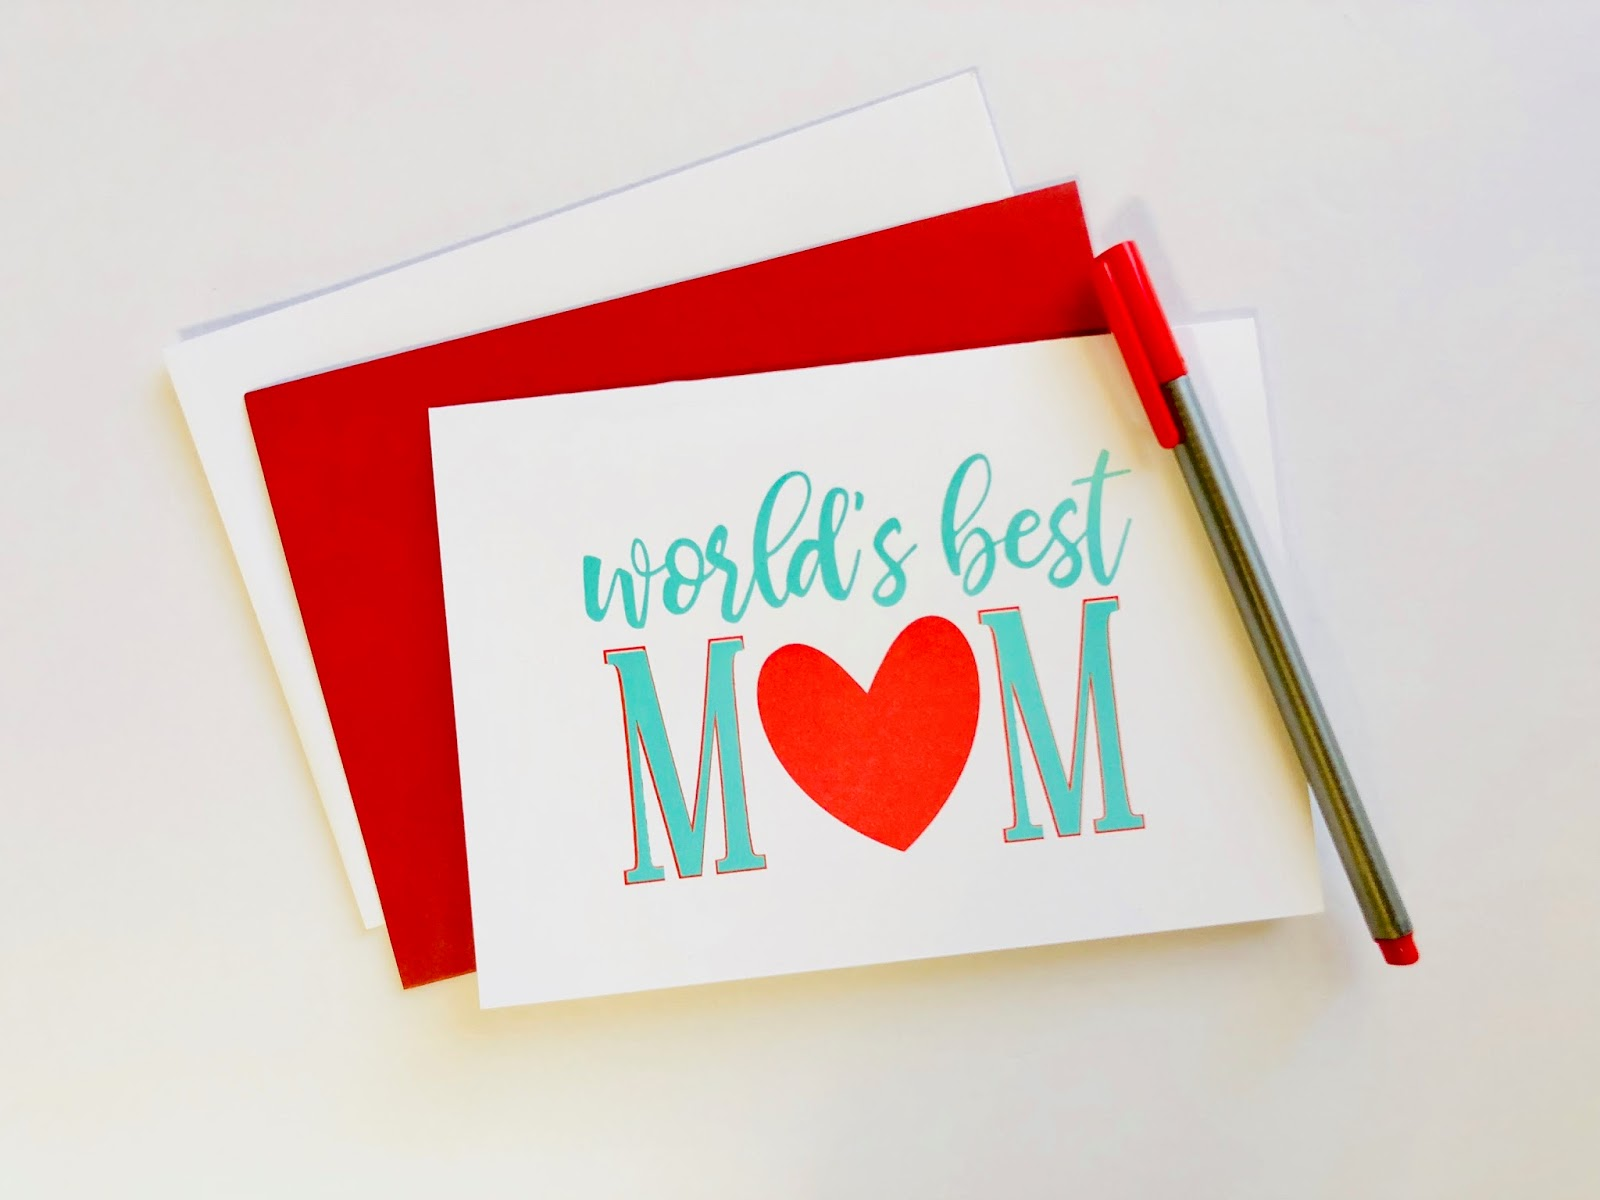 #Mother's Day Card #Mom #World's Best Mom #Valentine's Day Card #free #download #printable #Happy Valentine's Day Card